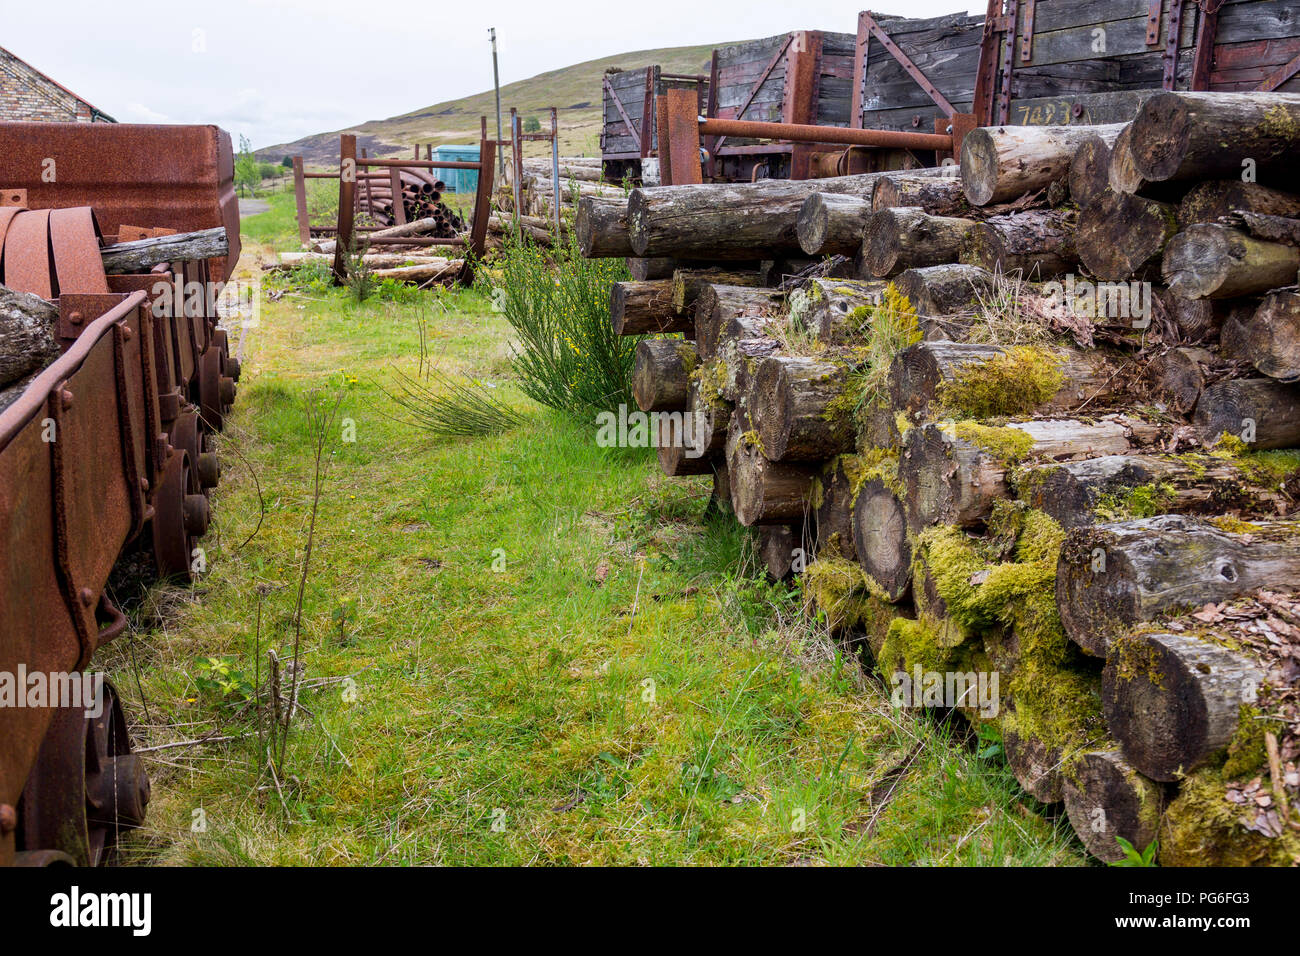 Rotting wooden railway wagons and pit props once used at Big Pit - a former coal mine now a UNESCO World Heritage Site in Blaenavon, Gwent, Wales, UK - Stock Image